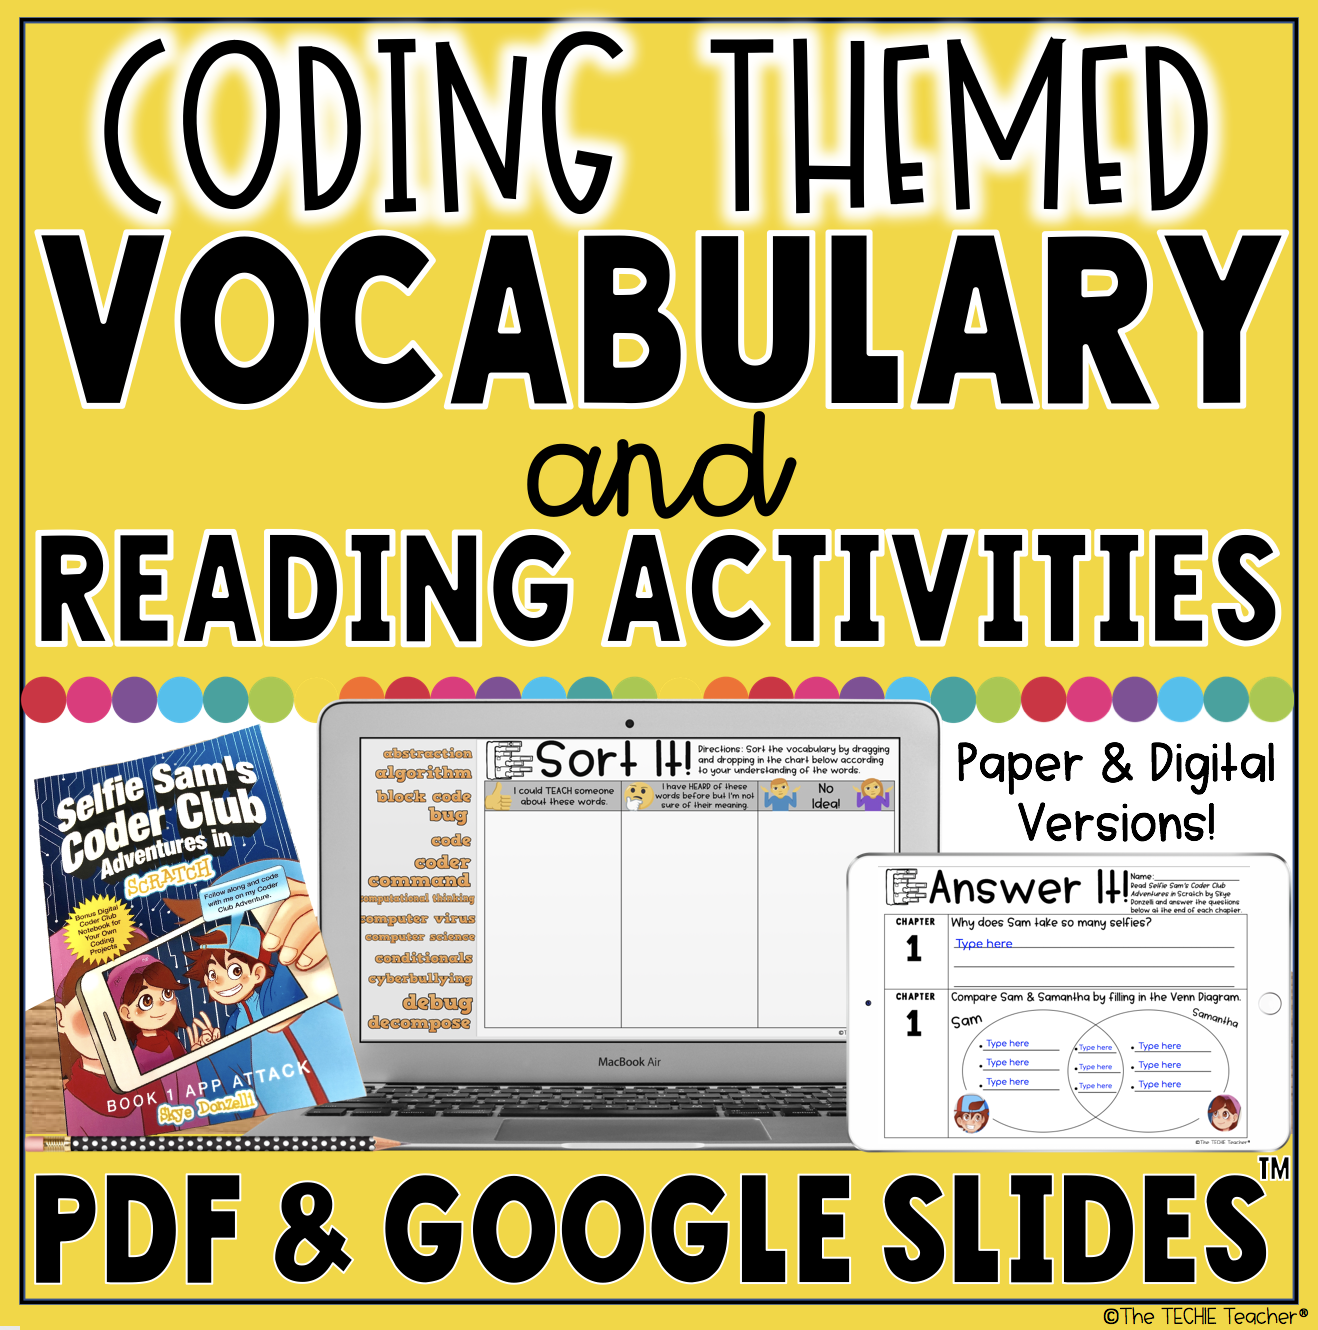 Coding Themed Vocabulary and Reading Activities for Selfie Sam's Coder Club Adventures in Scratch